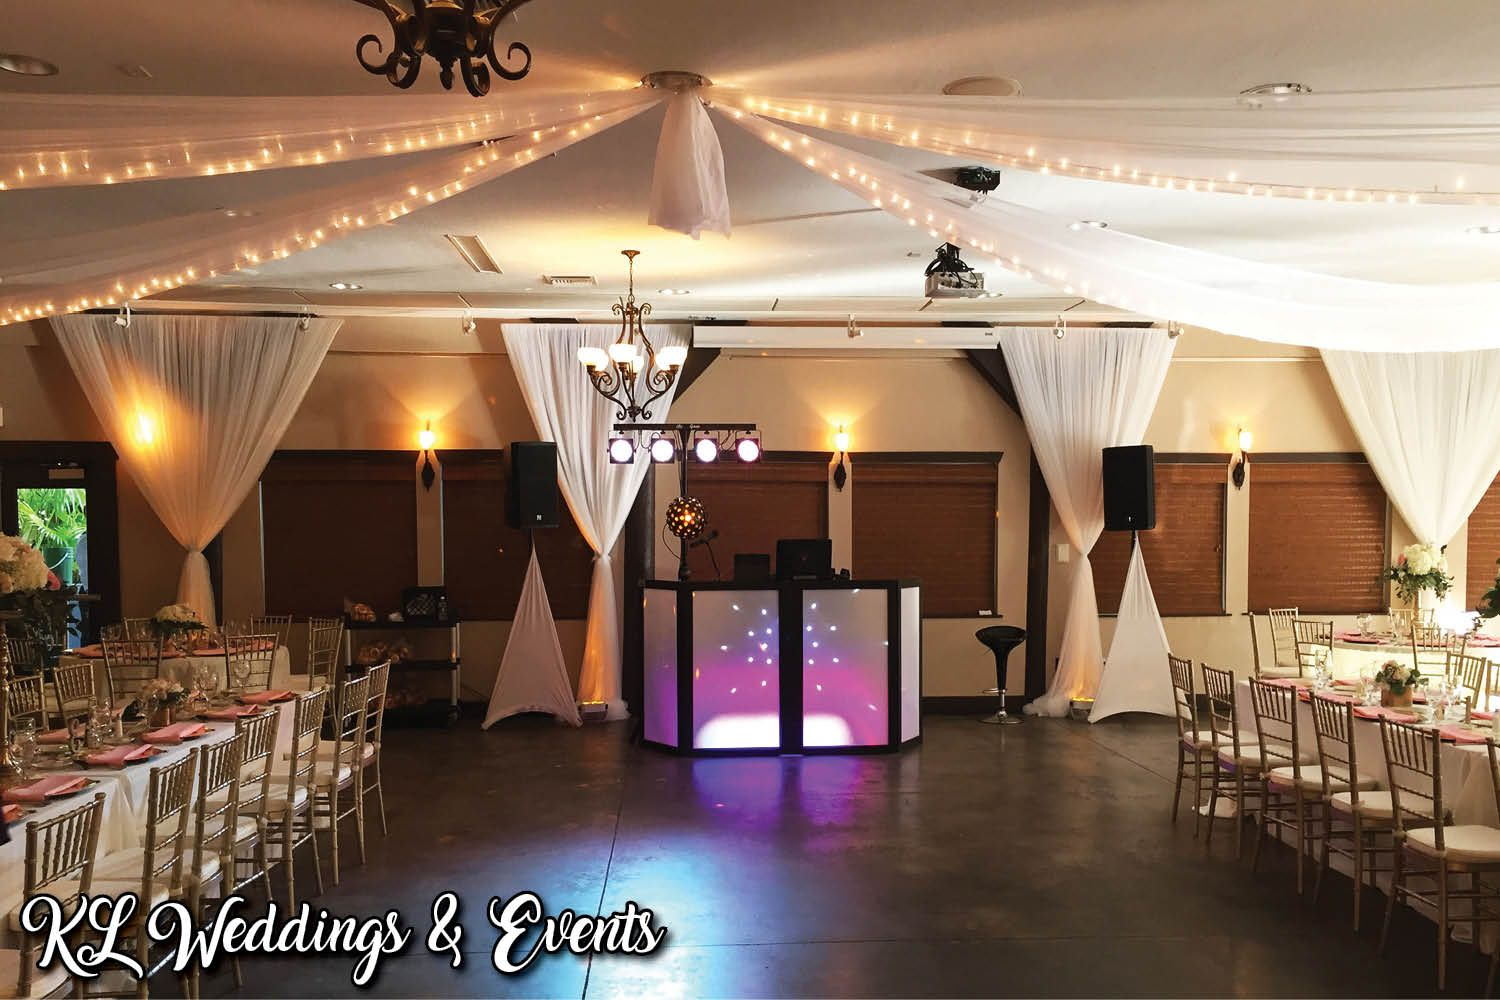 Need This Call Or Visit Www Klevents Drapery Com Wedding Events County Wedding Drapery